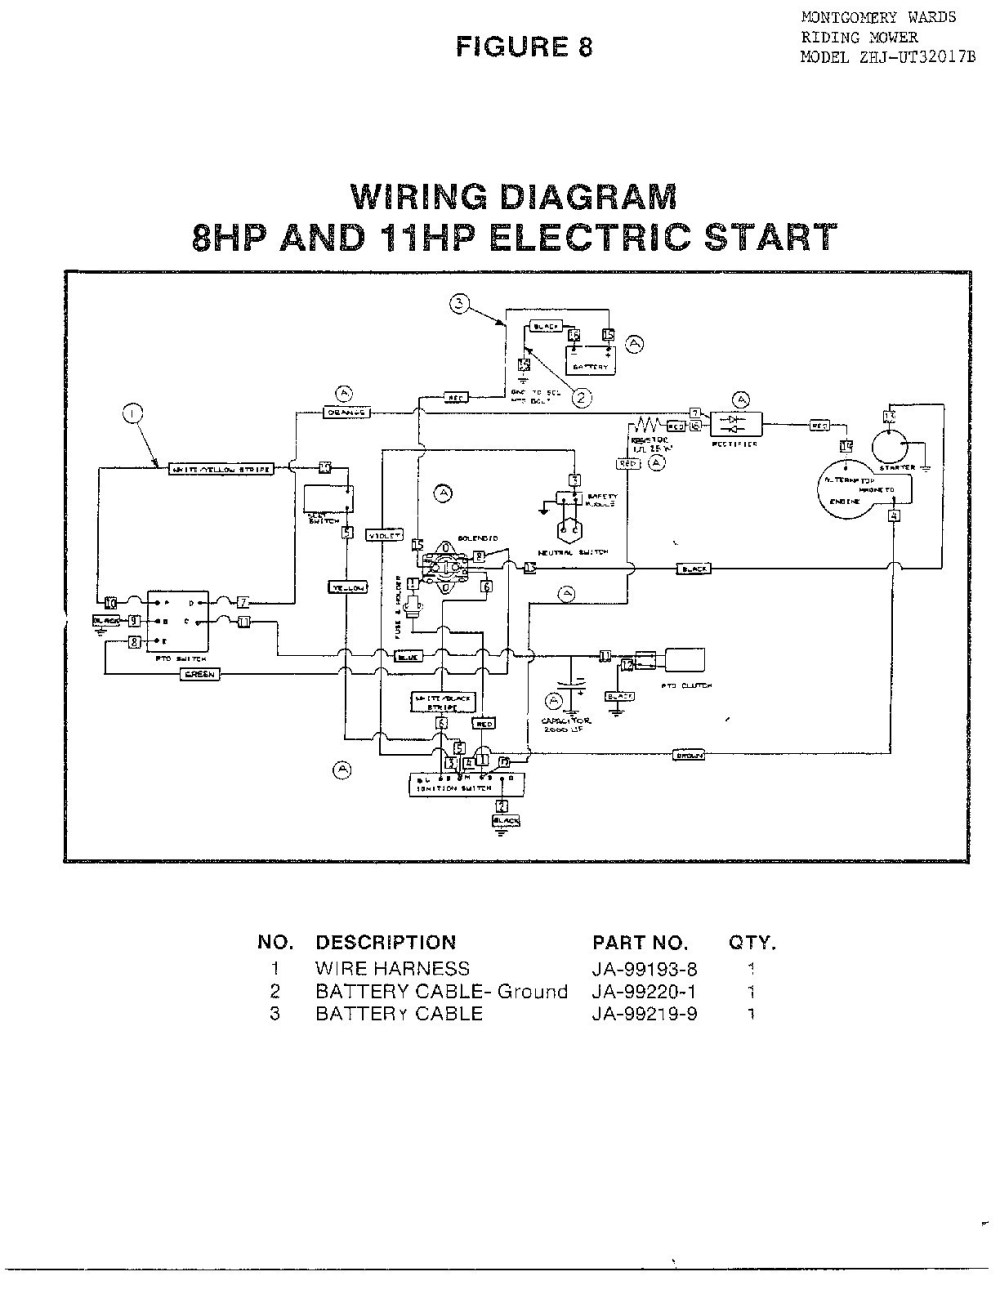 medium resolution of briggs wiring diagram 12 up free wiring diagram for you u2022 briggs and stratton 12 5 powerbuilt wire diagram 11 hp briggs wiring diagram